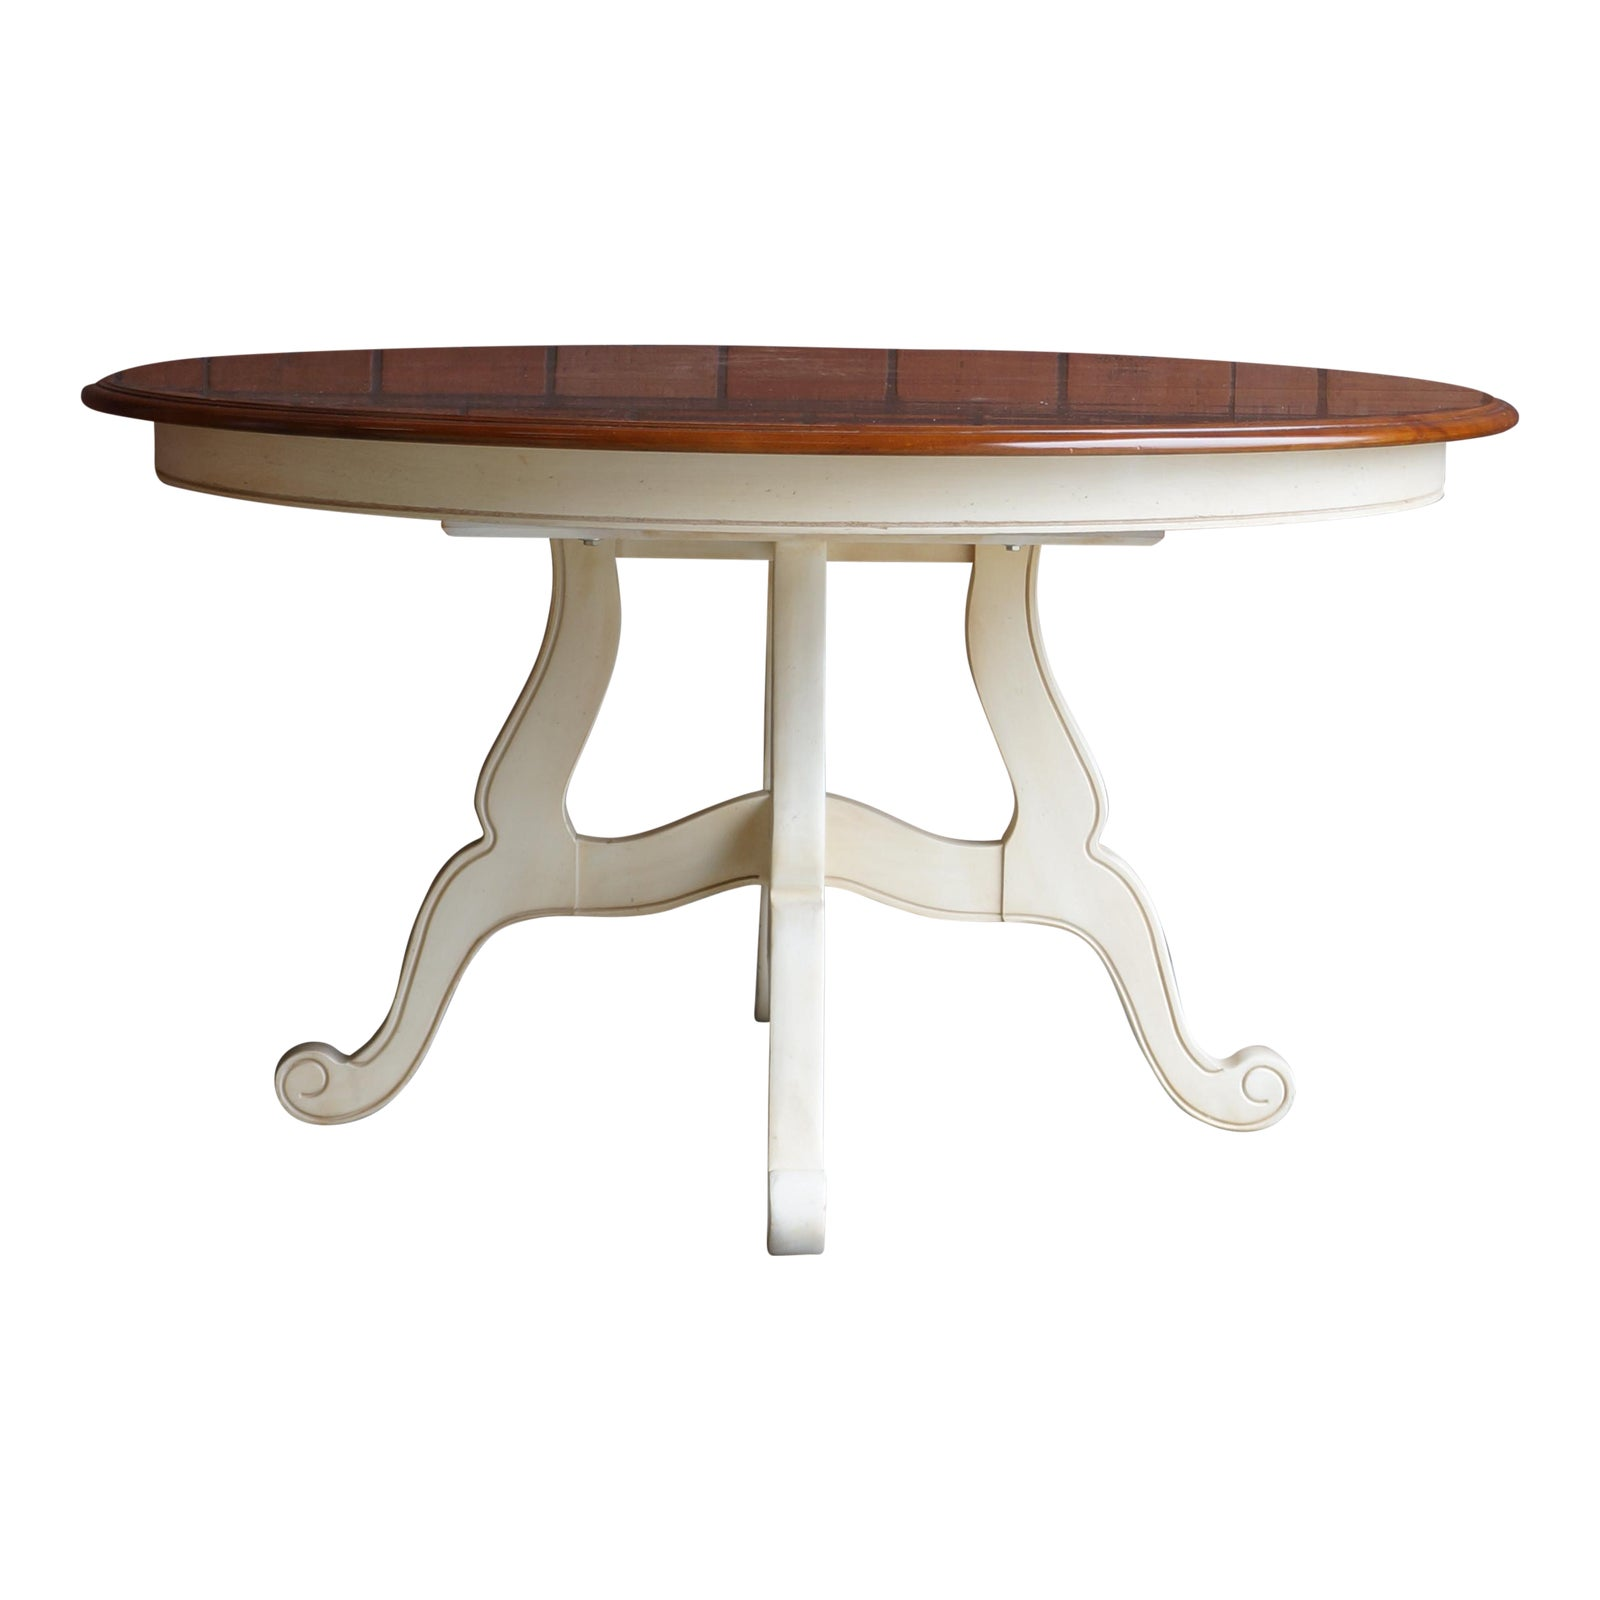 Ethan Allen New Country Coffee Table: Ethan Allen Country French Birchwood Dining Table